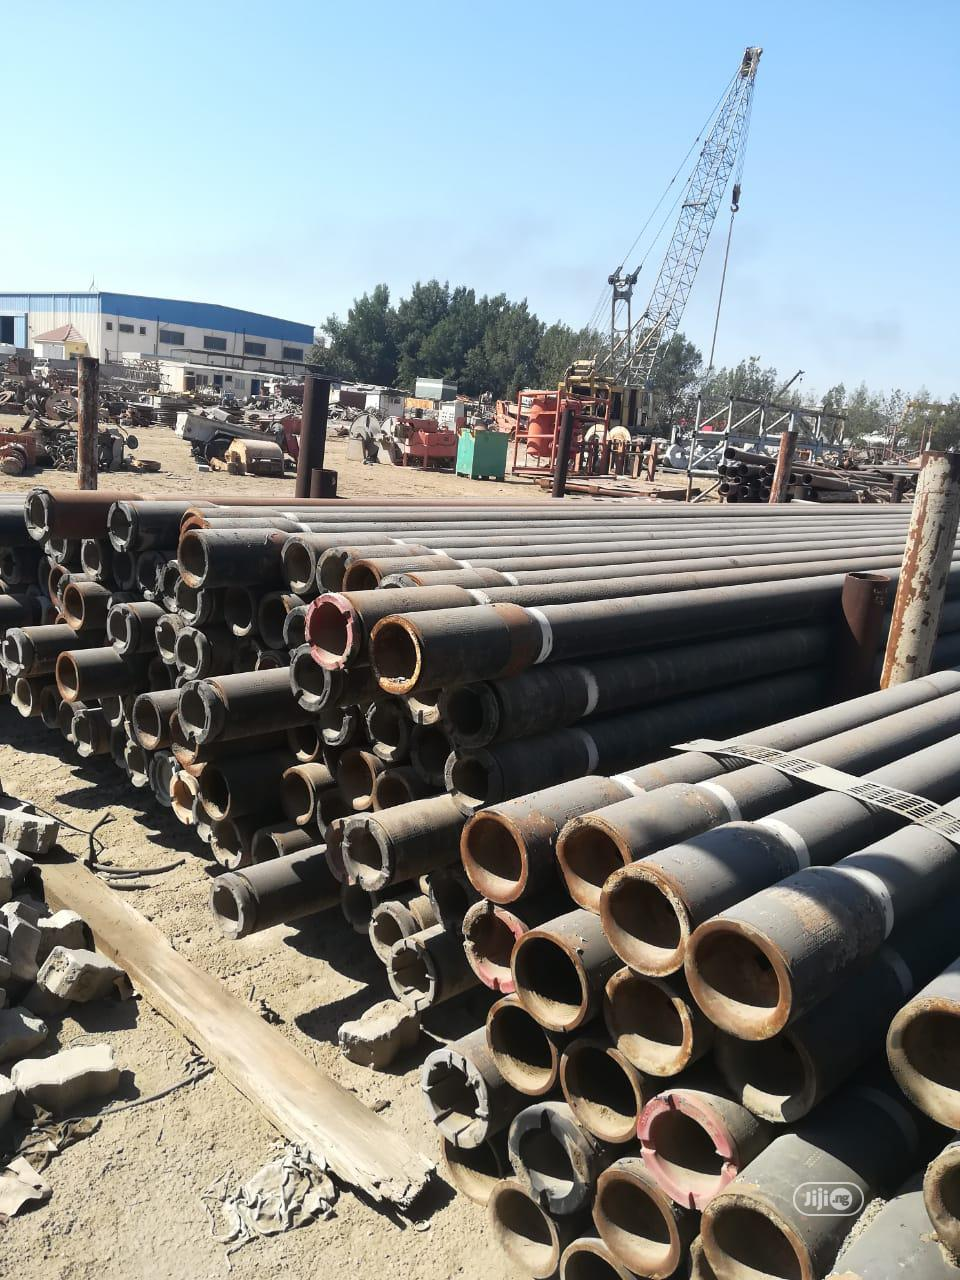 Drilling Pipes | Other Repair & Construction Items for sale in Apapa, Lagos State, Nigeria